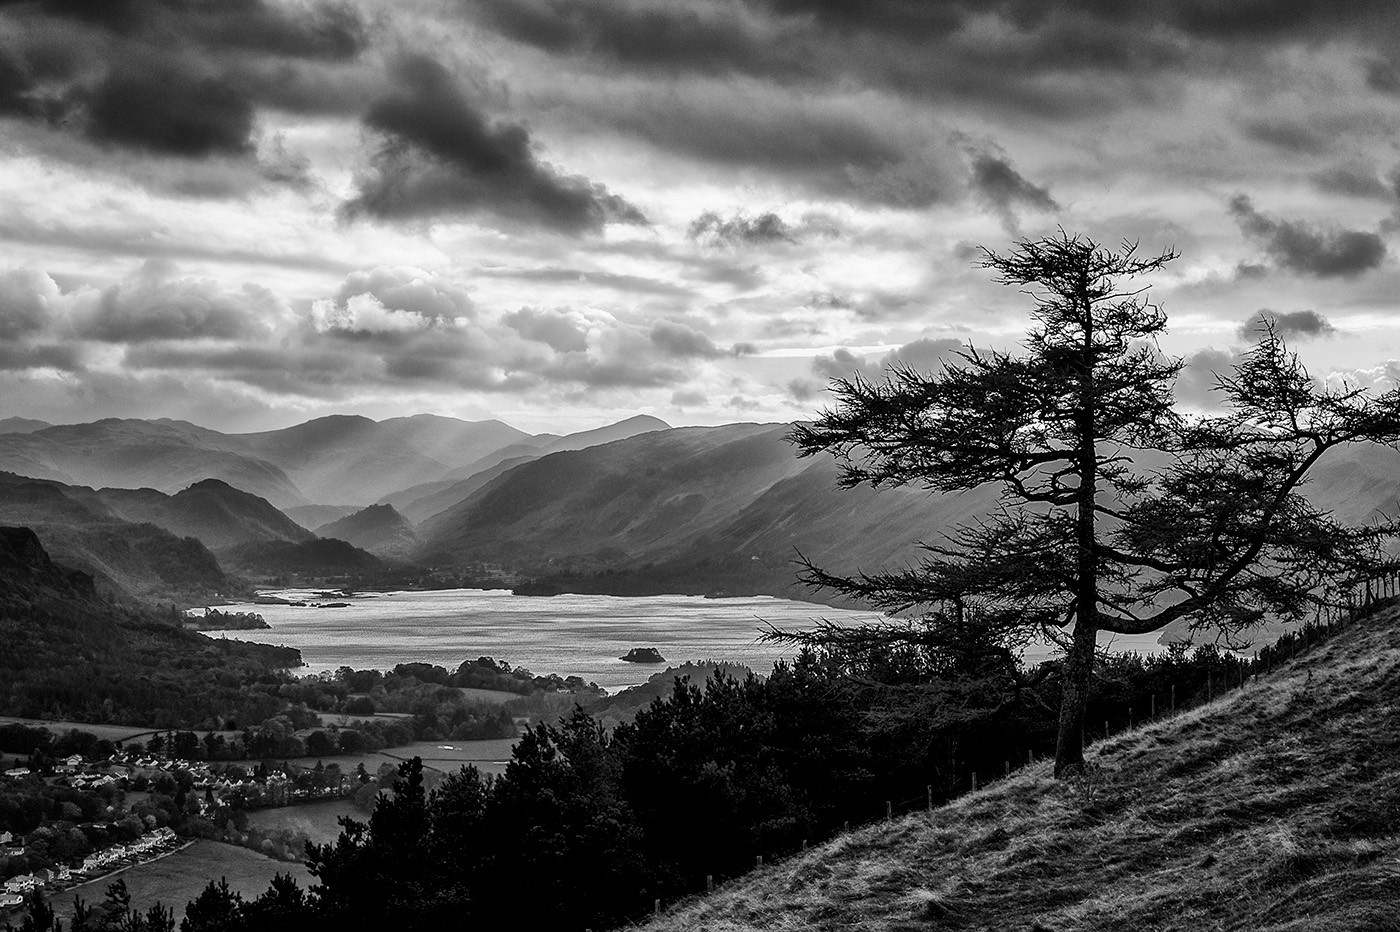 18 DERWENT WATER FROM LATRIGG by Steve Oakes